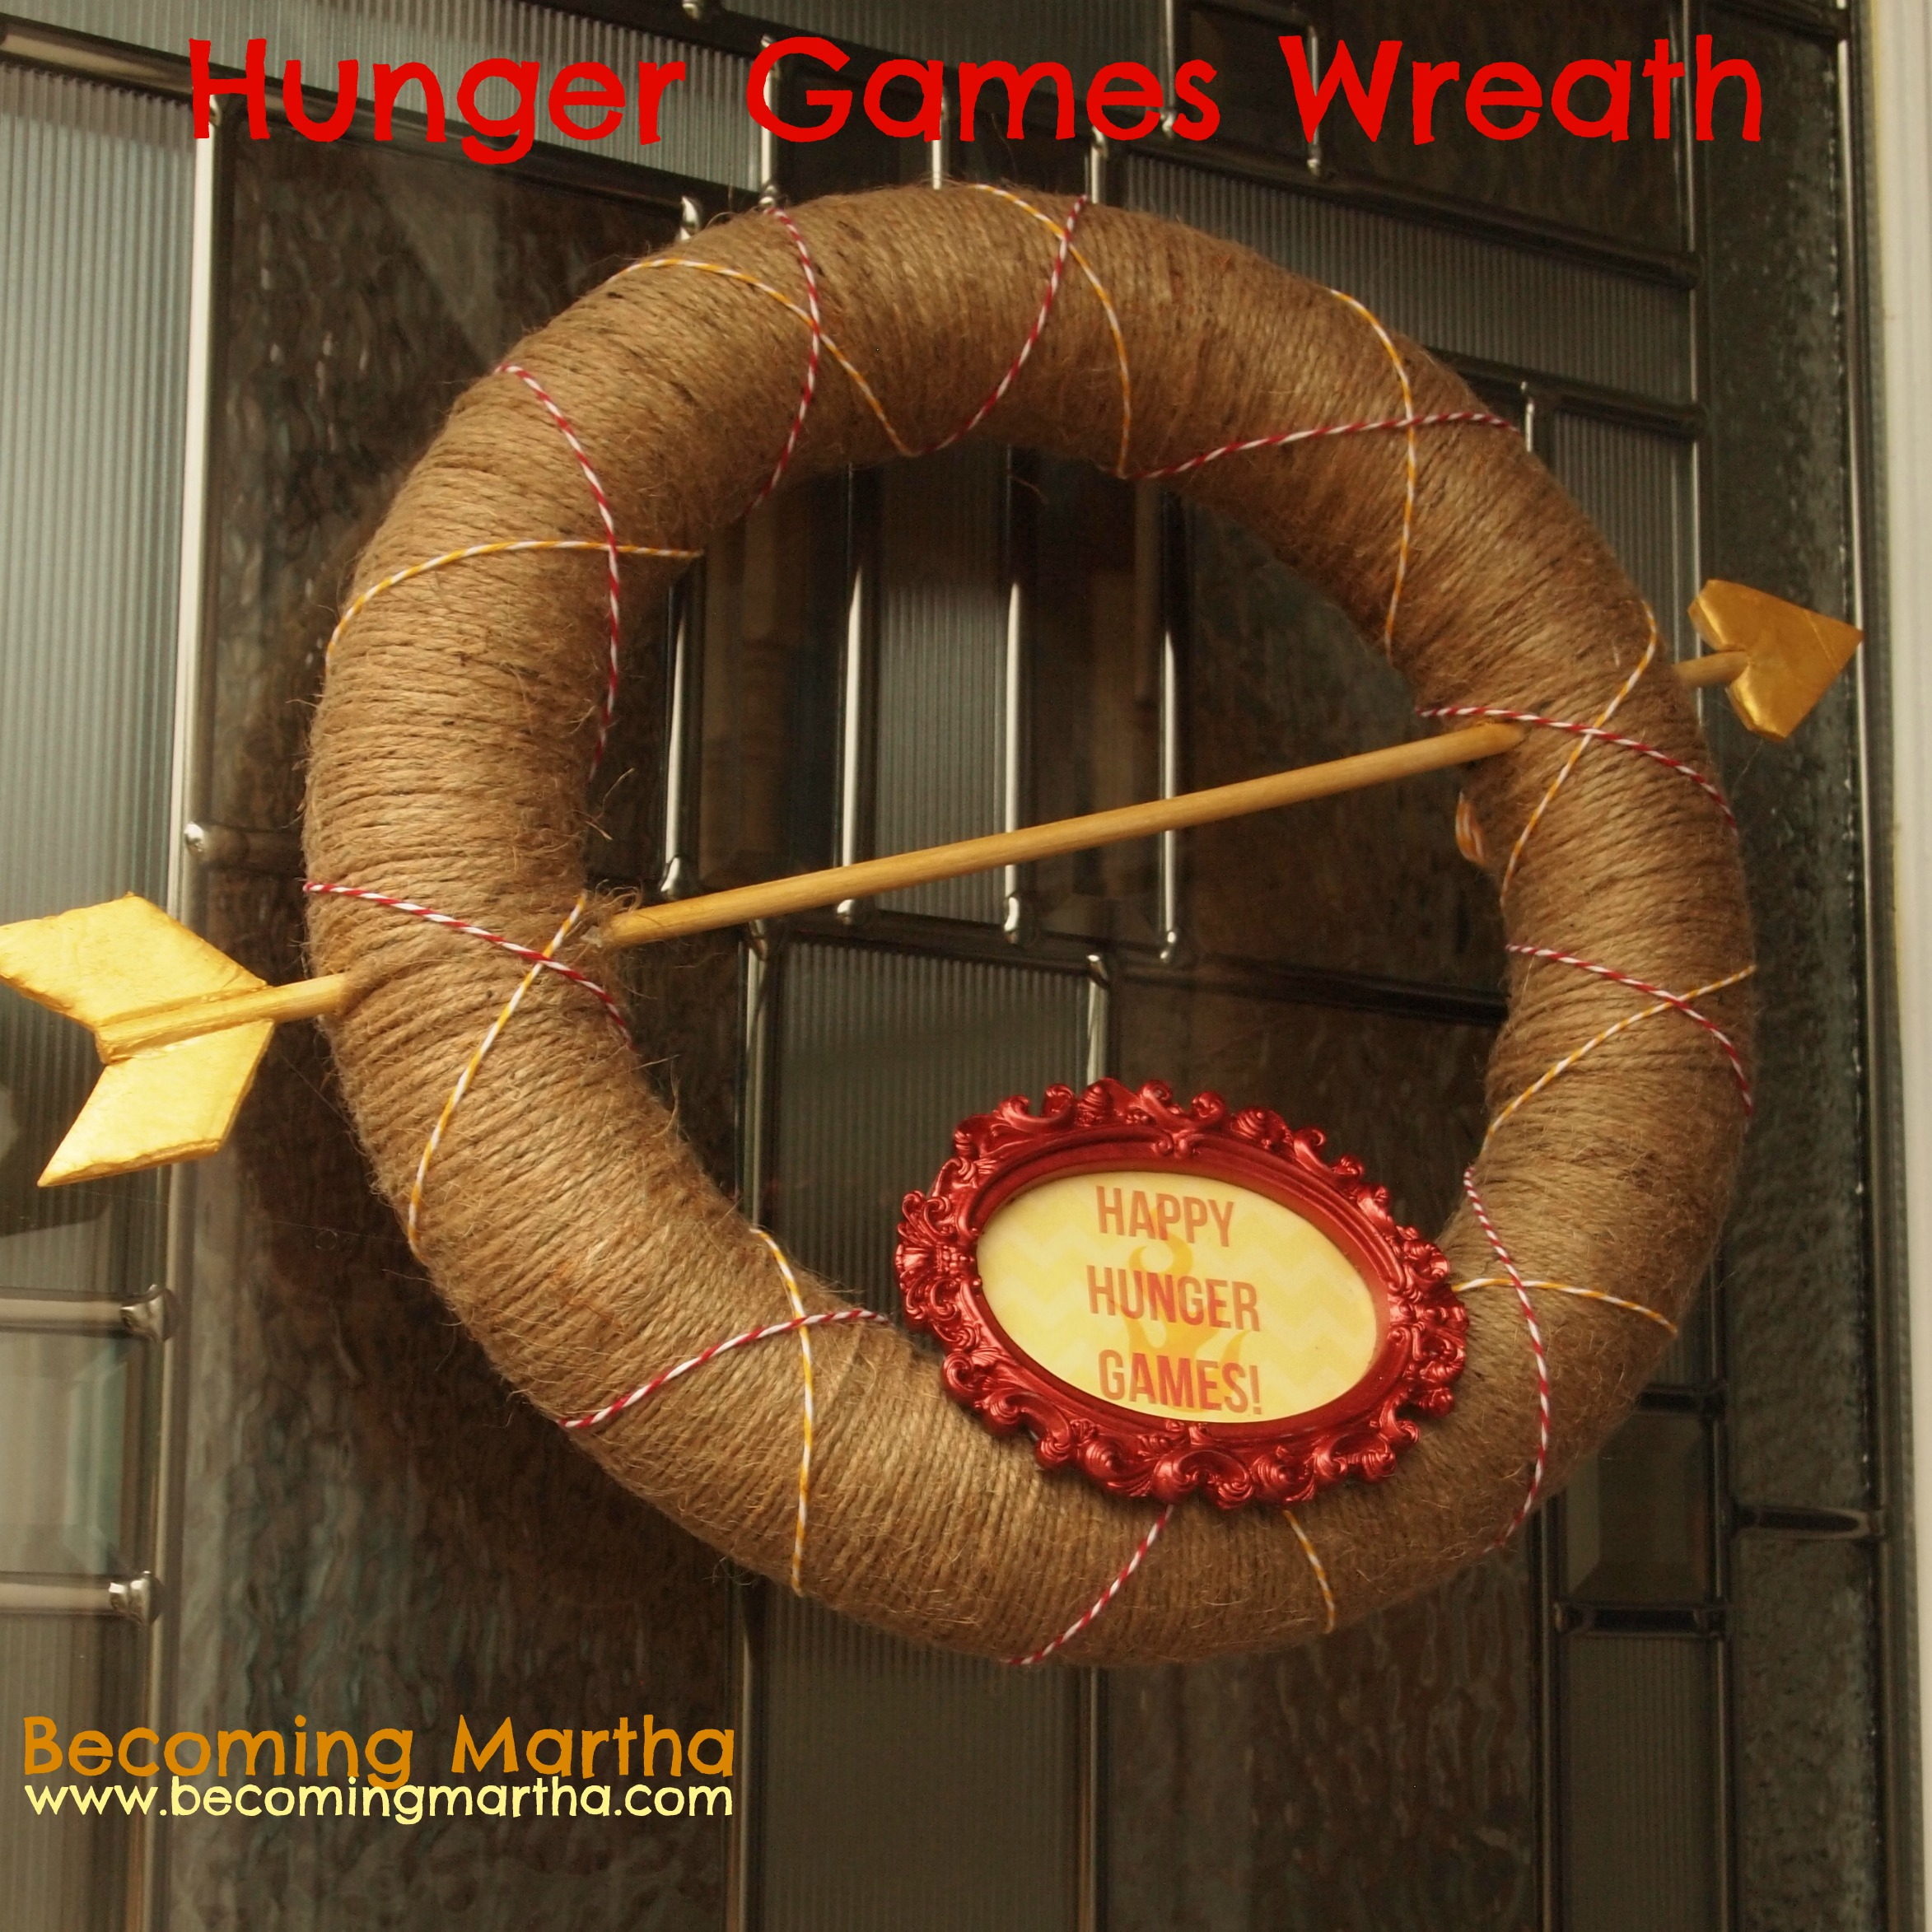 Hunger Games Wreath